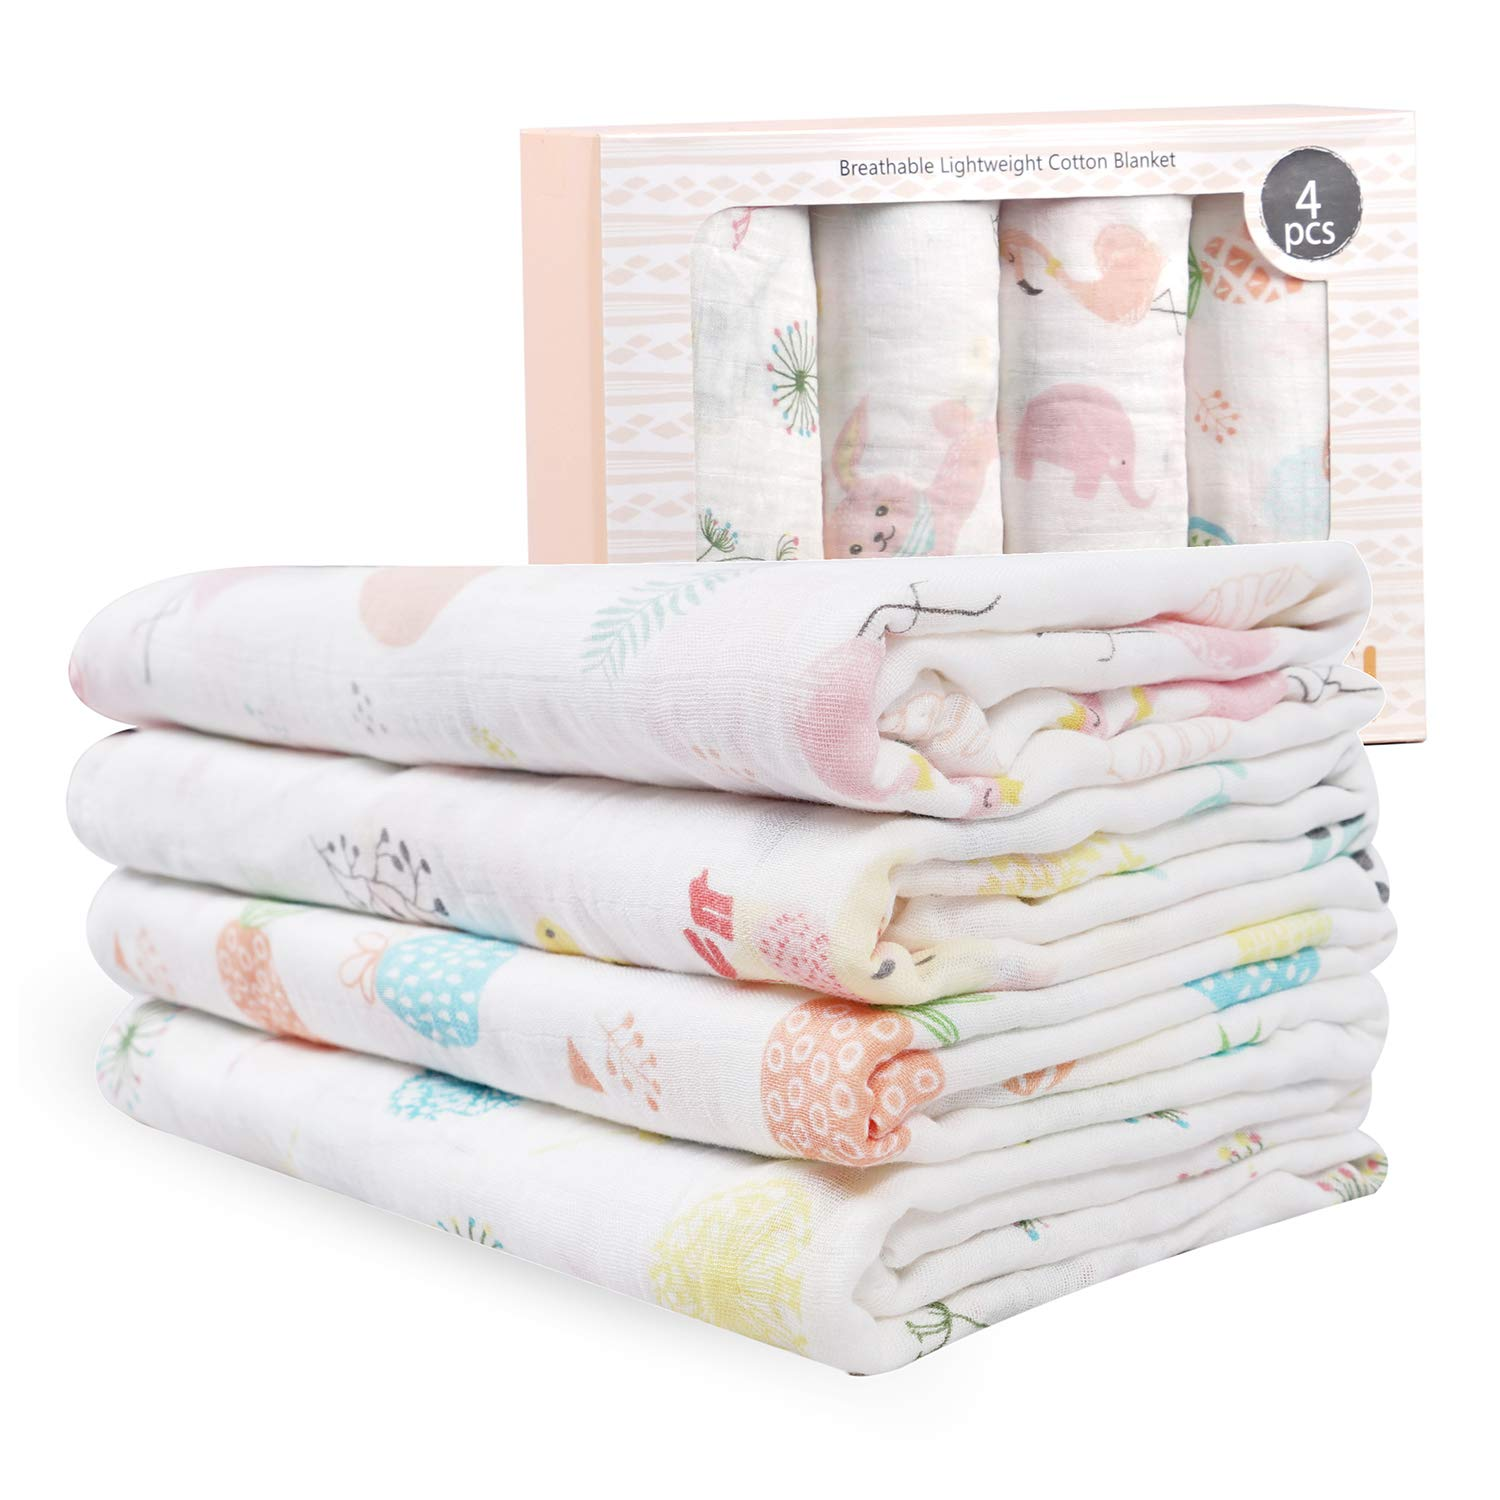 Baby Muslin Swaddle Blanket for Newborn Girls | 70% Bamboo 30% Cotton Receiving Blanket Swaddle Wrap with Gift Box | 4 Packs 47 X 47 inch Muslin Towel | Bunny, Pineapple, Dandelion, Flamingo by Viviland